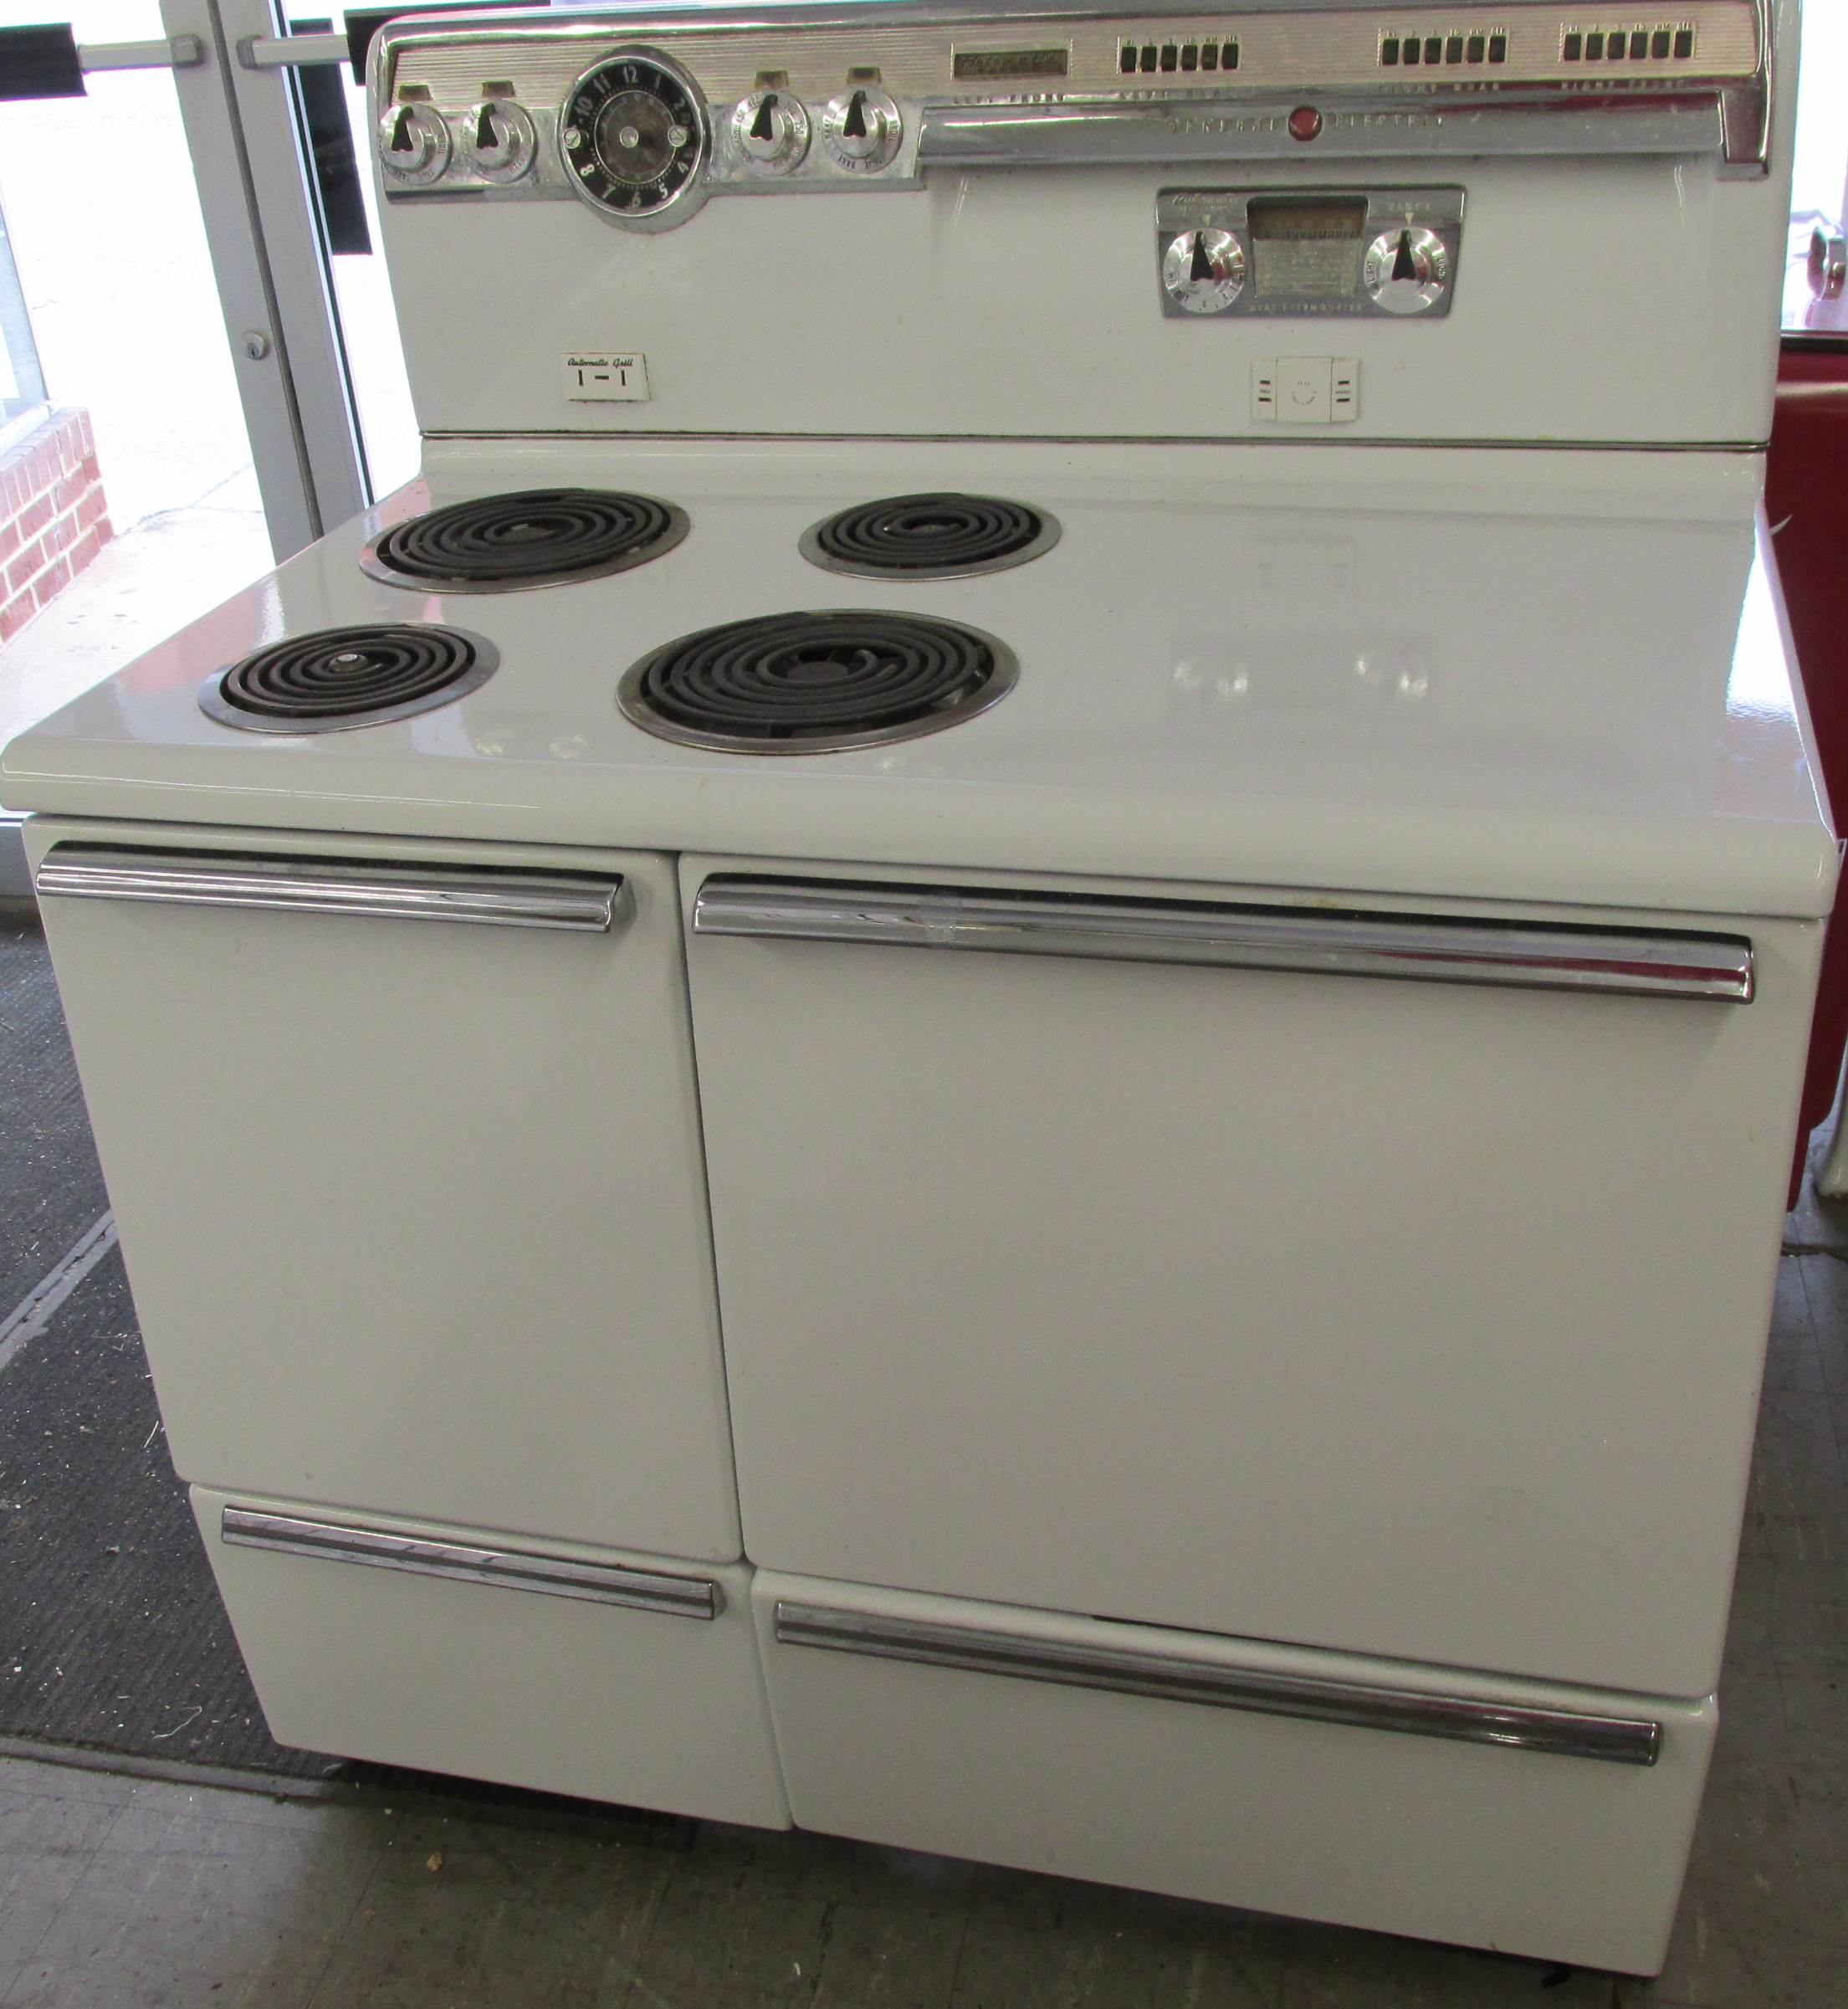 1955 ge double oven electric stove kitchen oven double oven kitchen vintage appliances